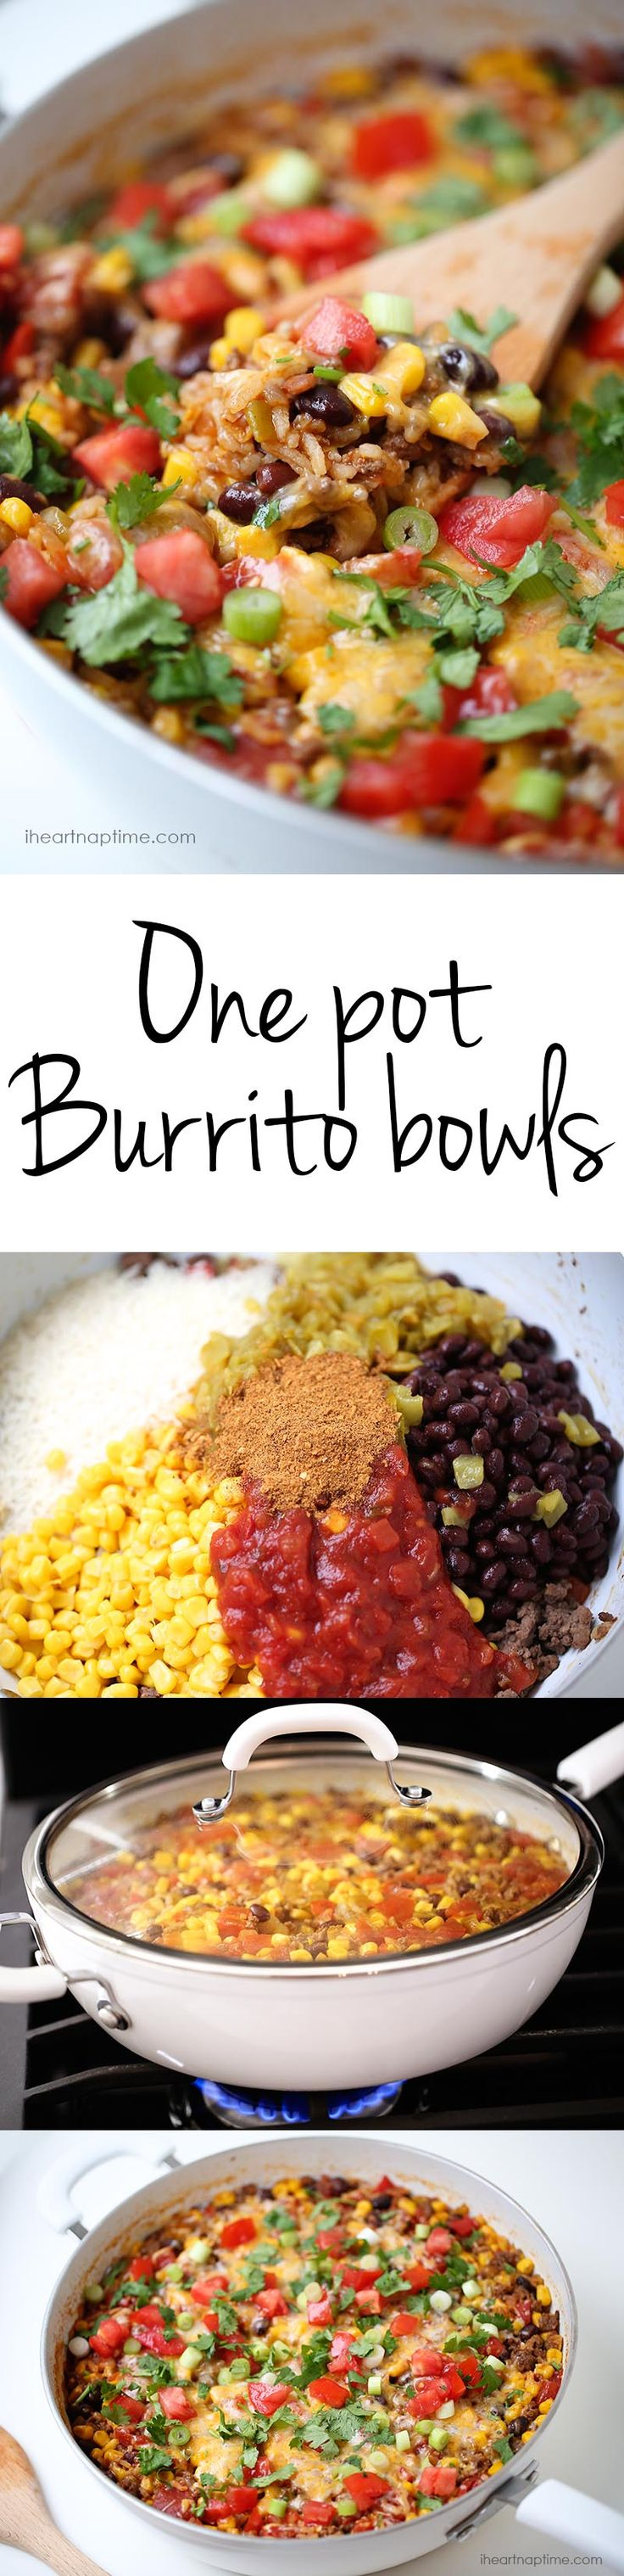 One pot burrito bowls recipe ...Quick and easy dinner recipe!